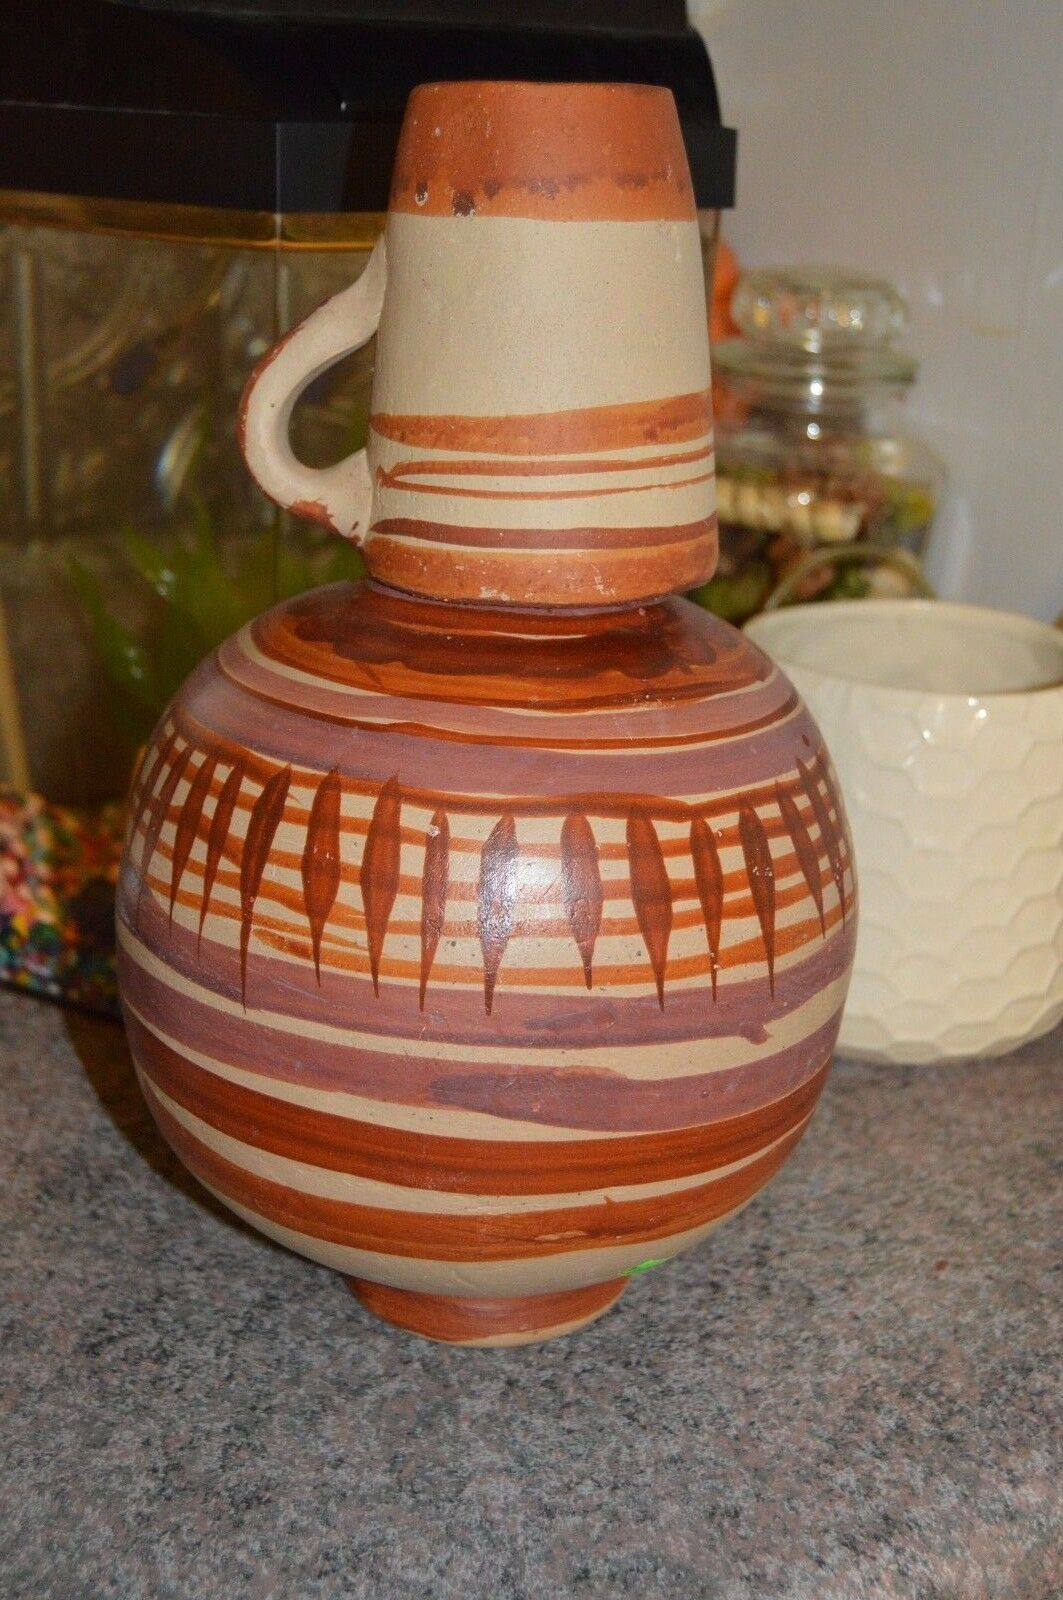 Southwestern red clay pottery bedside water caraffe container cup 1 ft approx lg